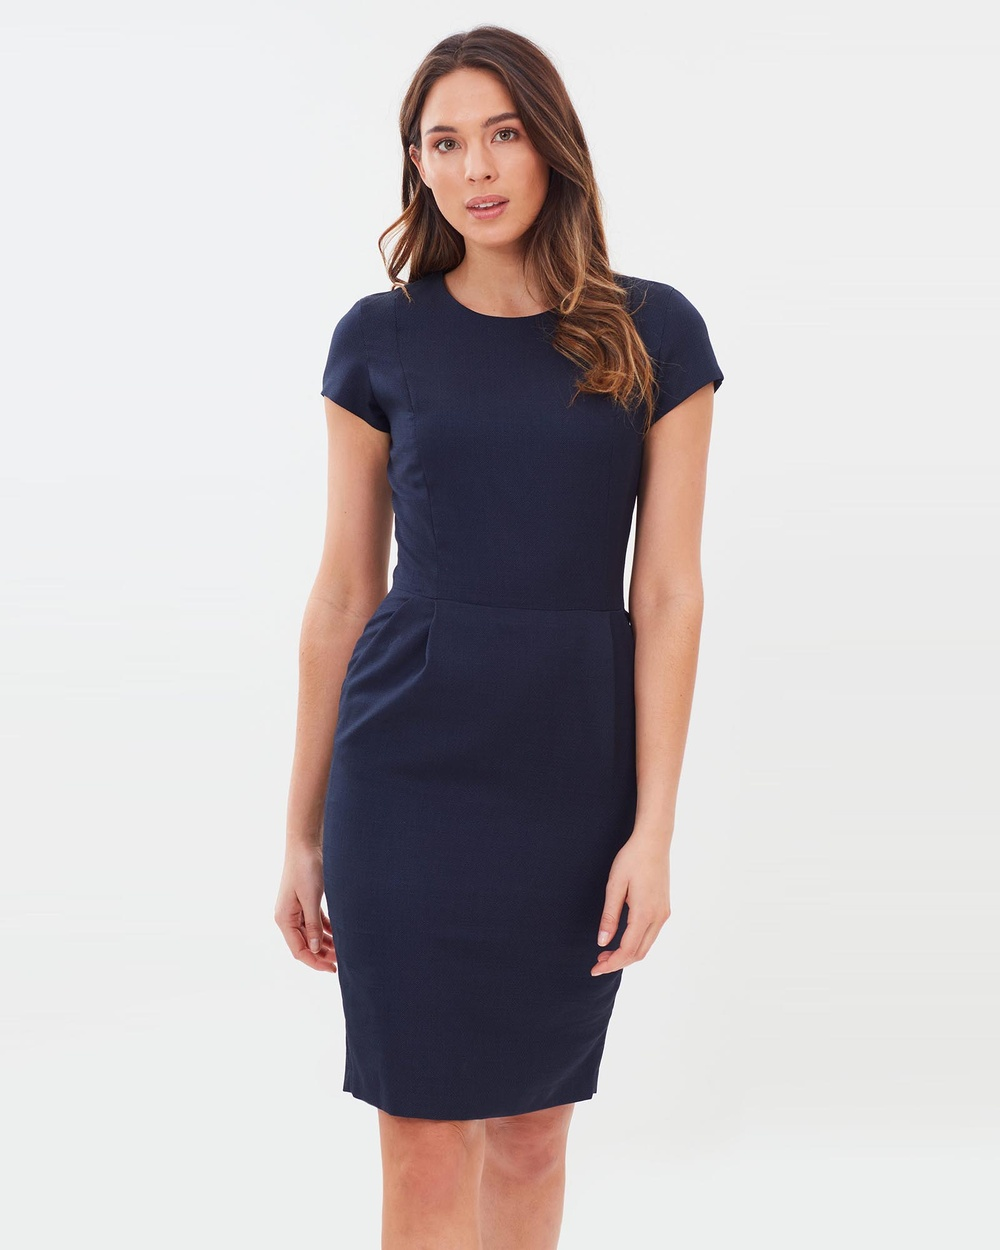 Farage Navy Lane Birdseye Dress